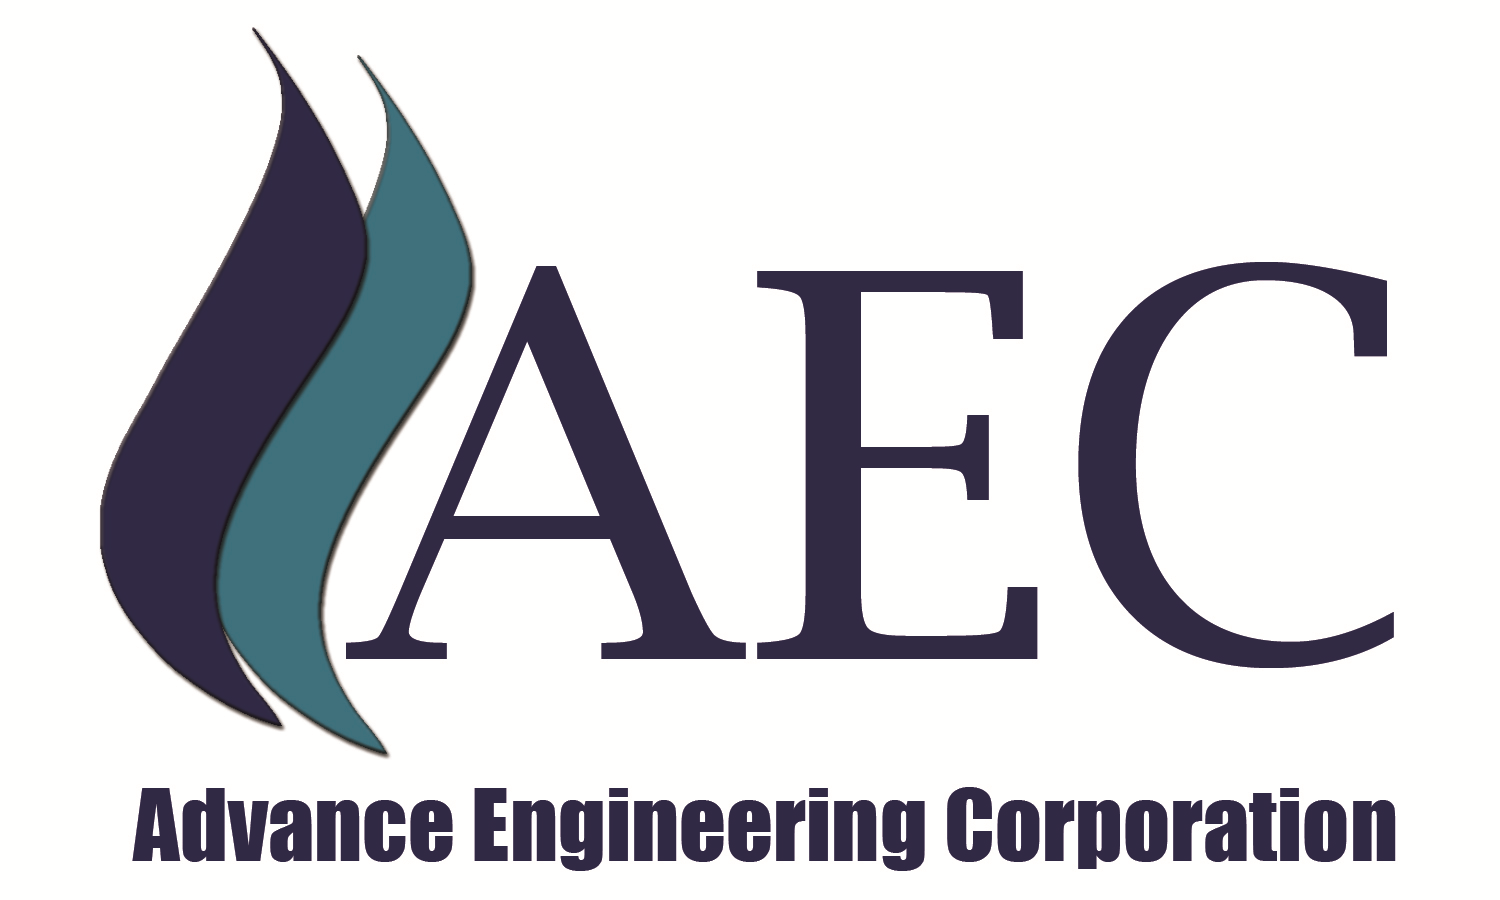 Advance Engineering Corporation